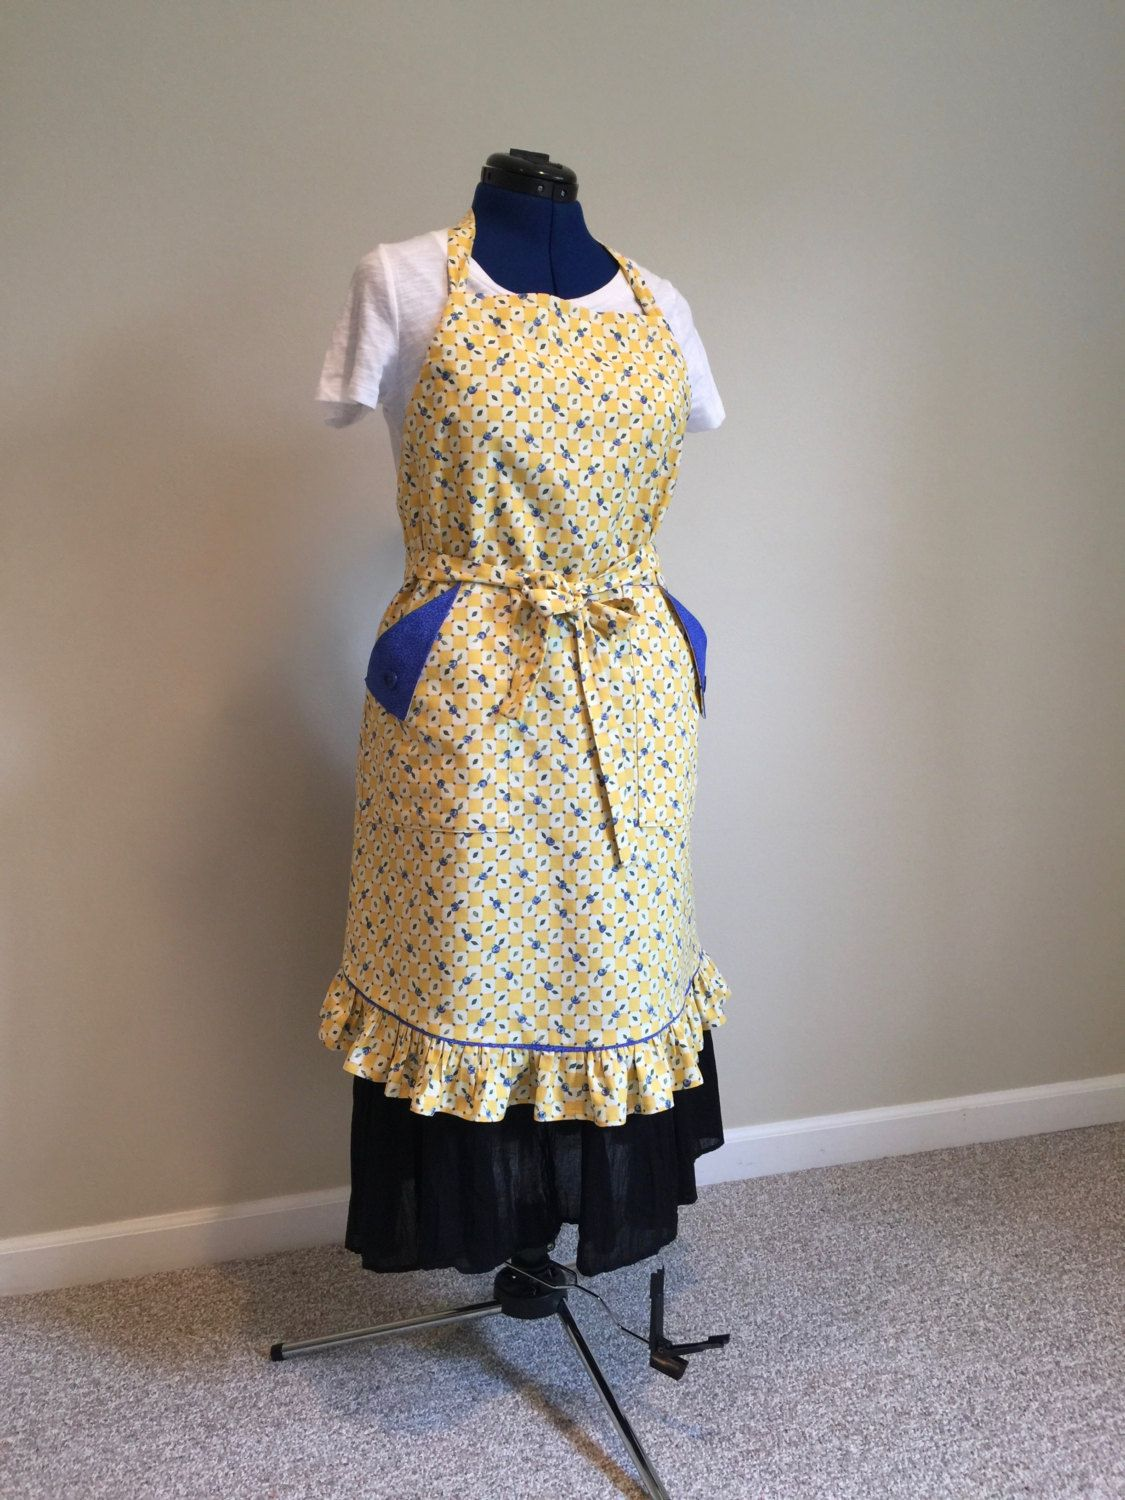 French Farmhouse Apron//ruffled apron//adjustable apron//yellow and blue apron by Sewginidesigns on Etsy